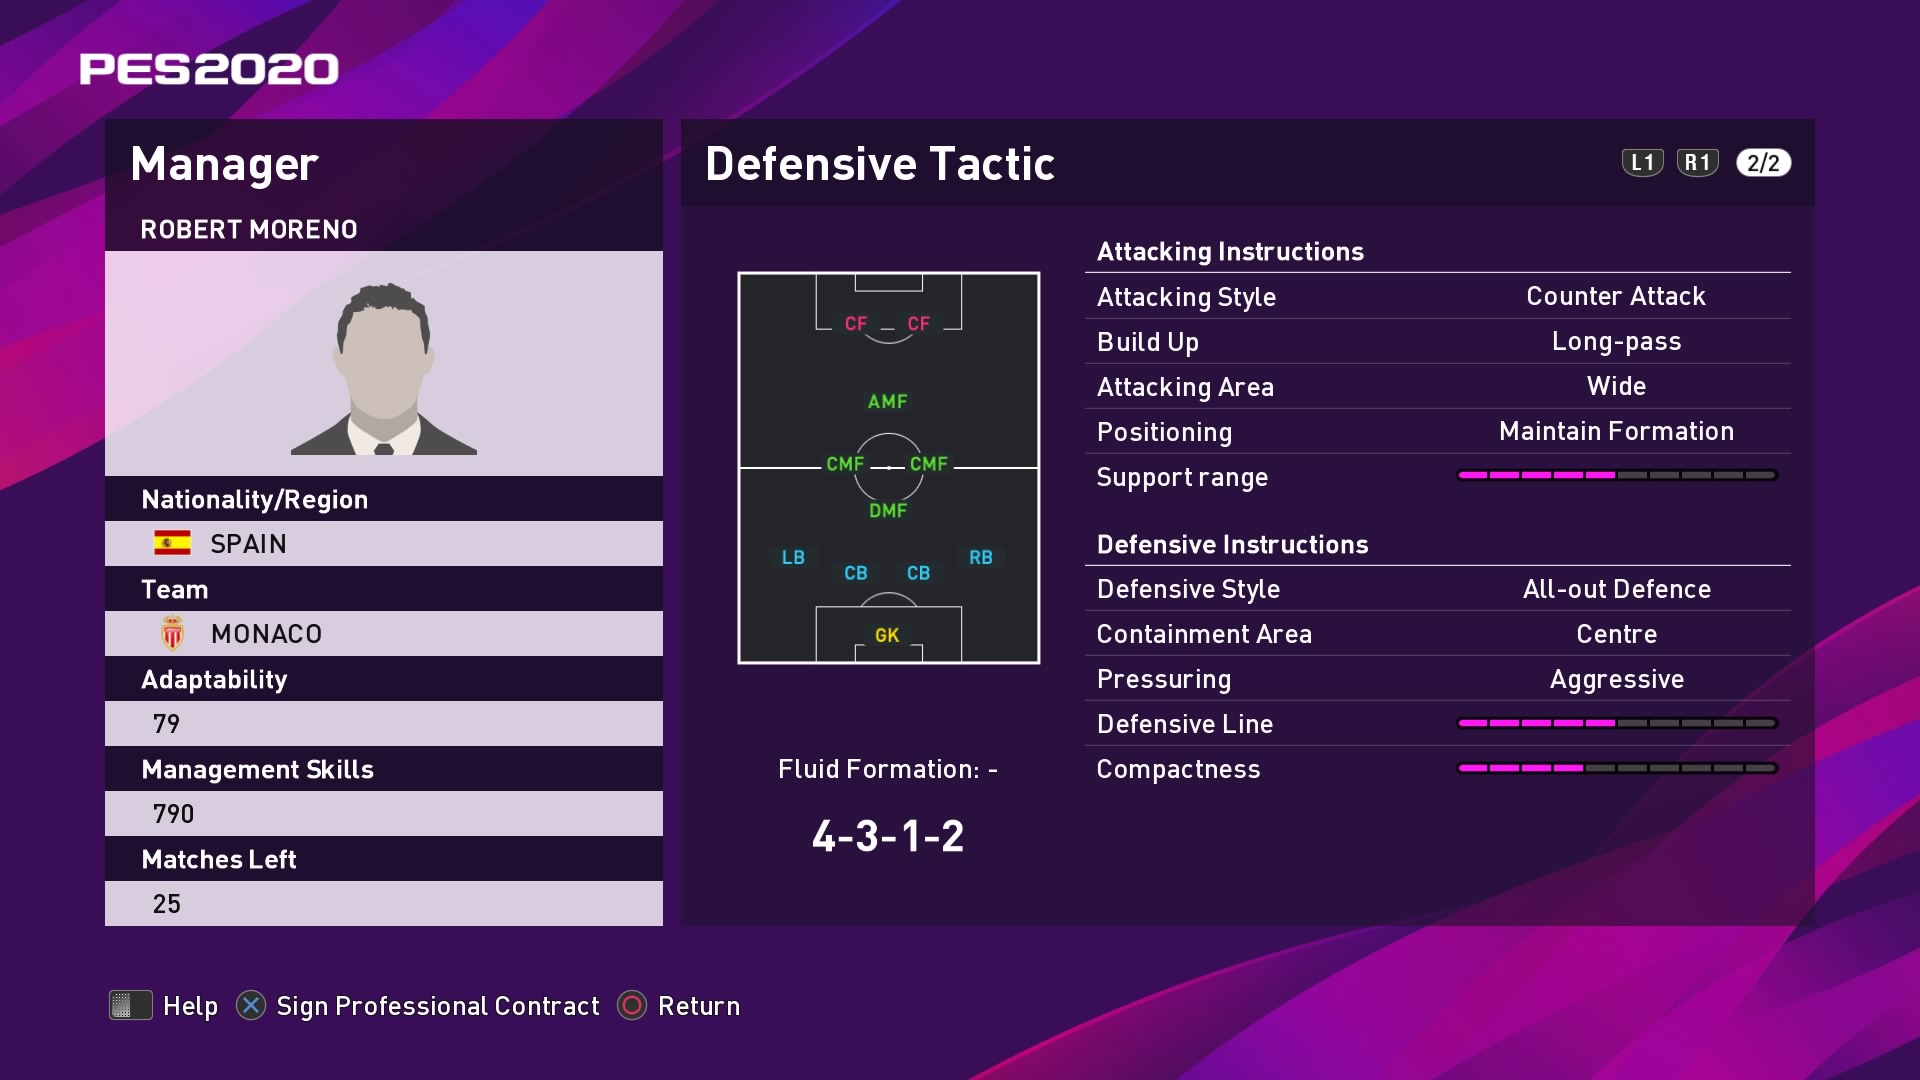 Robert Moreno Defensive Tactic in PES 2020 myClub